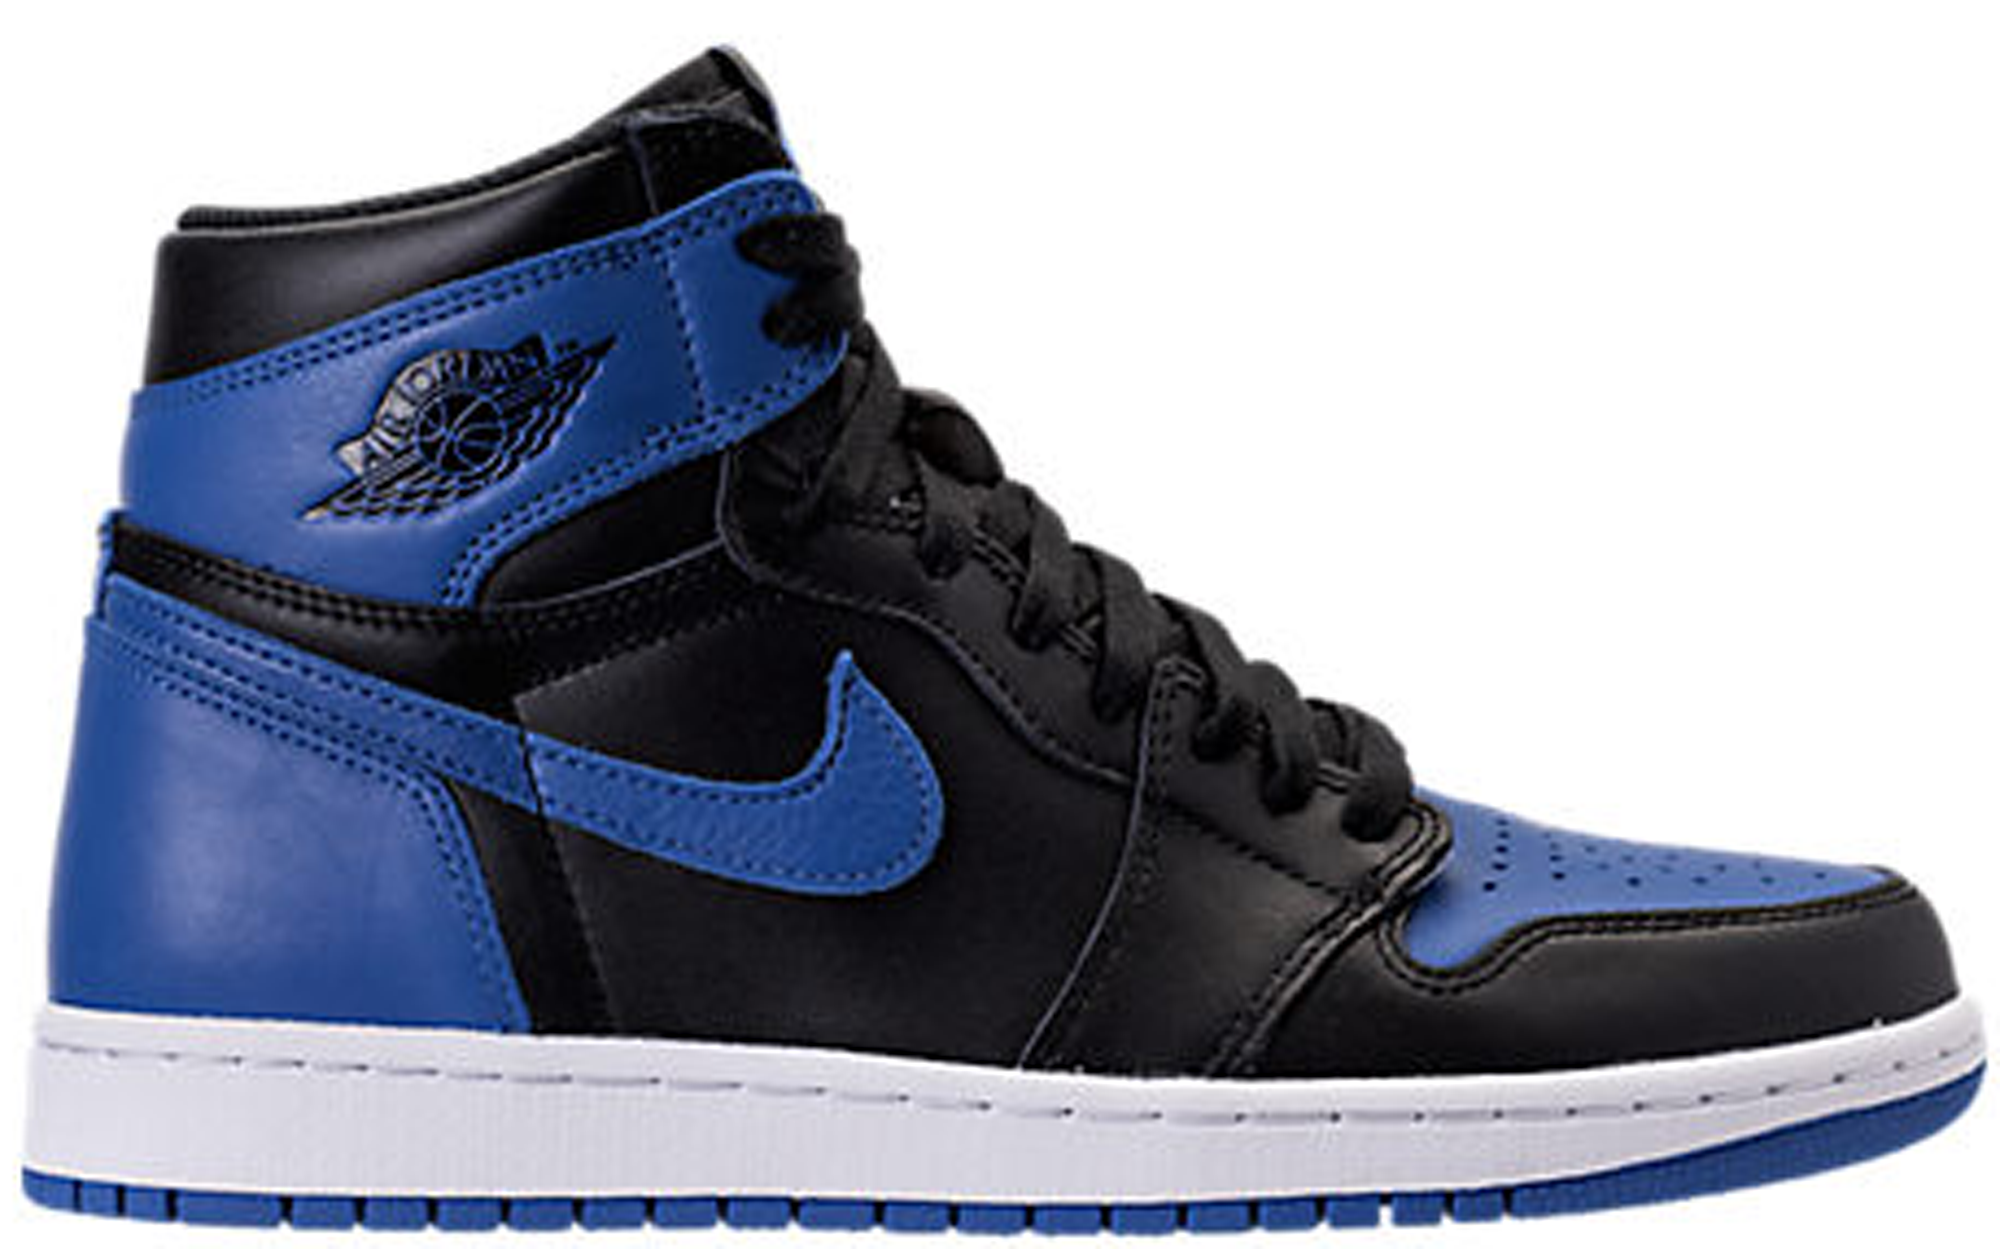 info for efed5 50df9 Air Jordan 1 Retro High OG Black Varsity Royal 2017